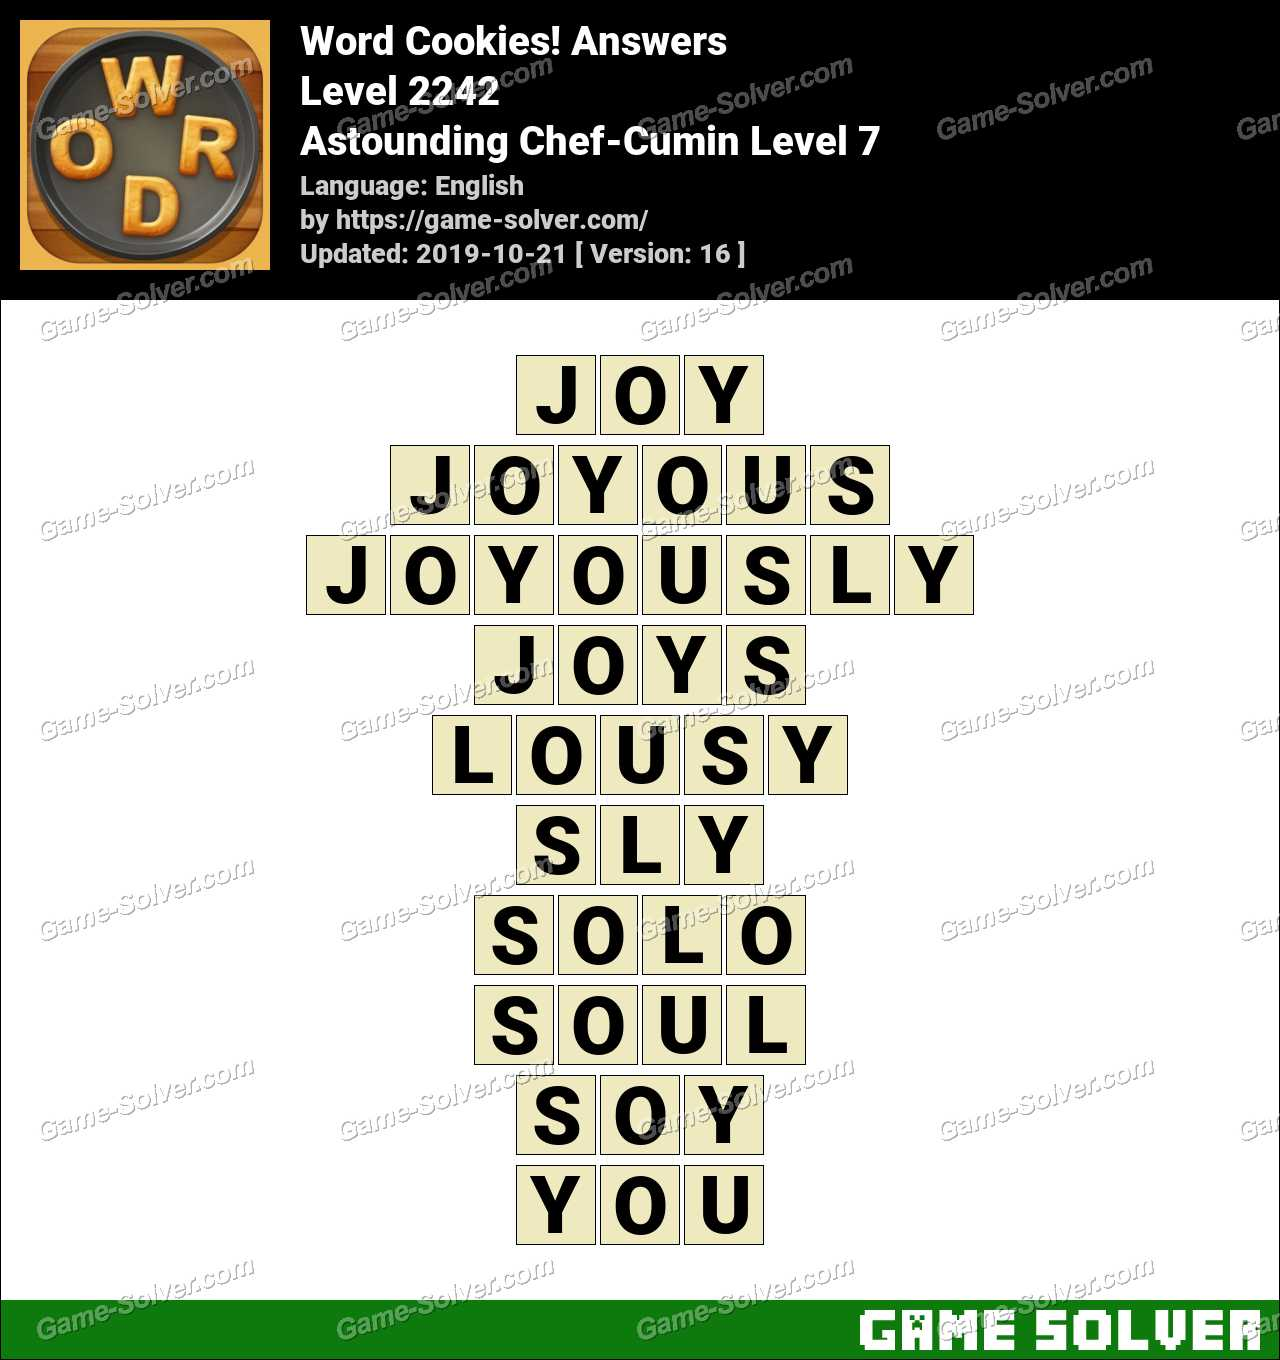 Word Cookies Astounding Chef-Cumin Level 7 Answers